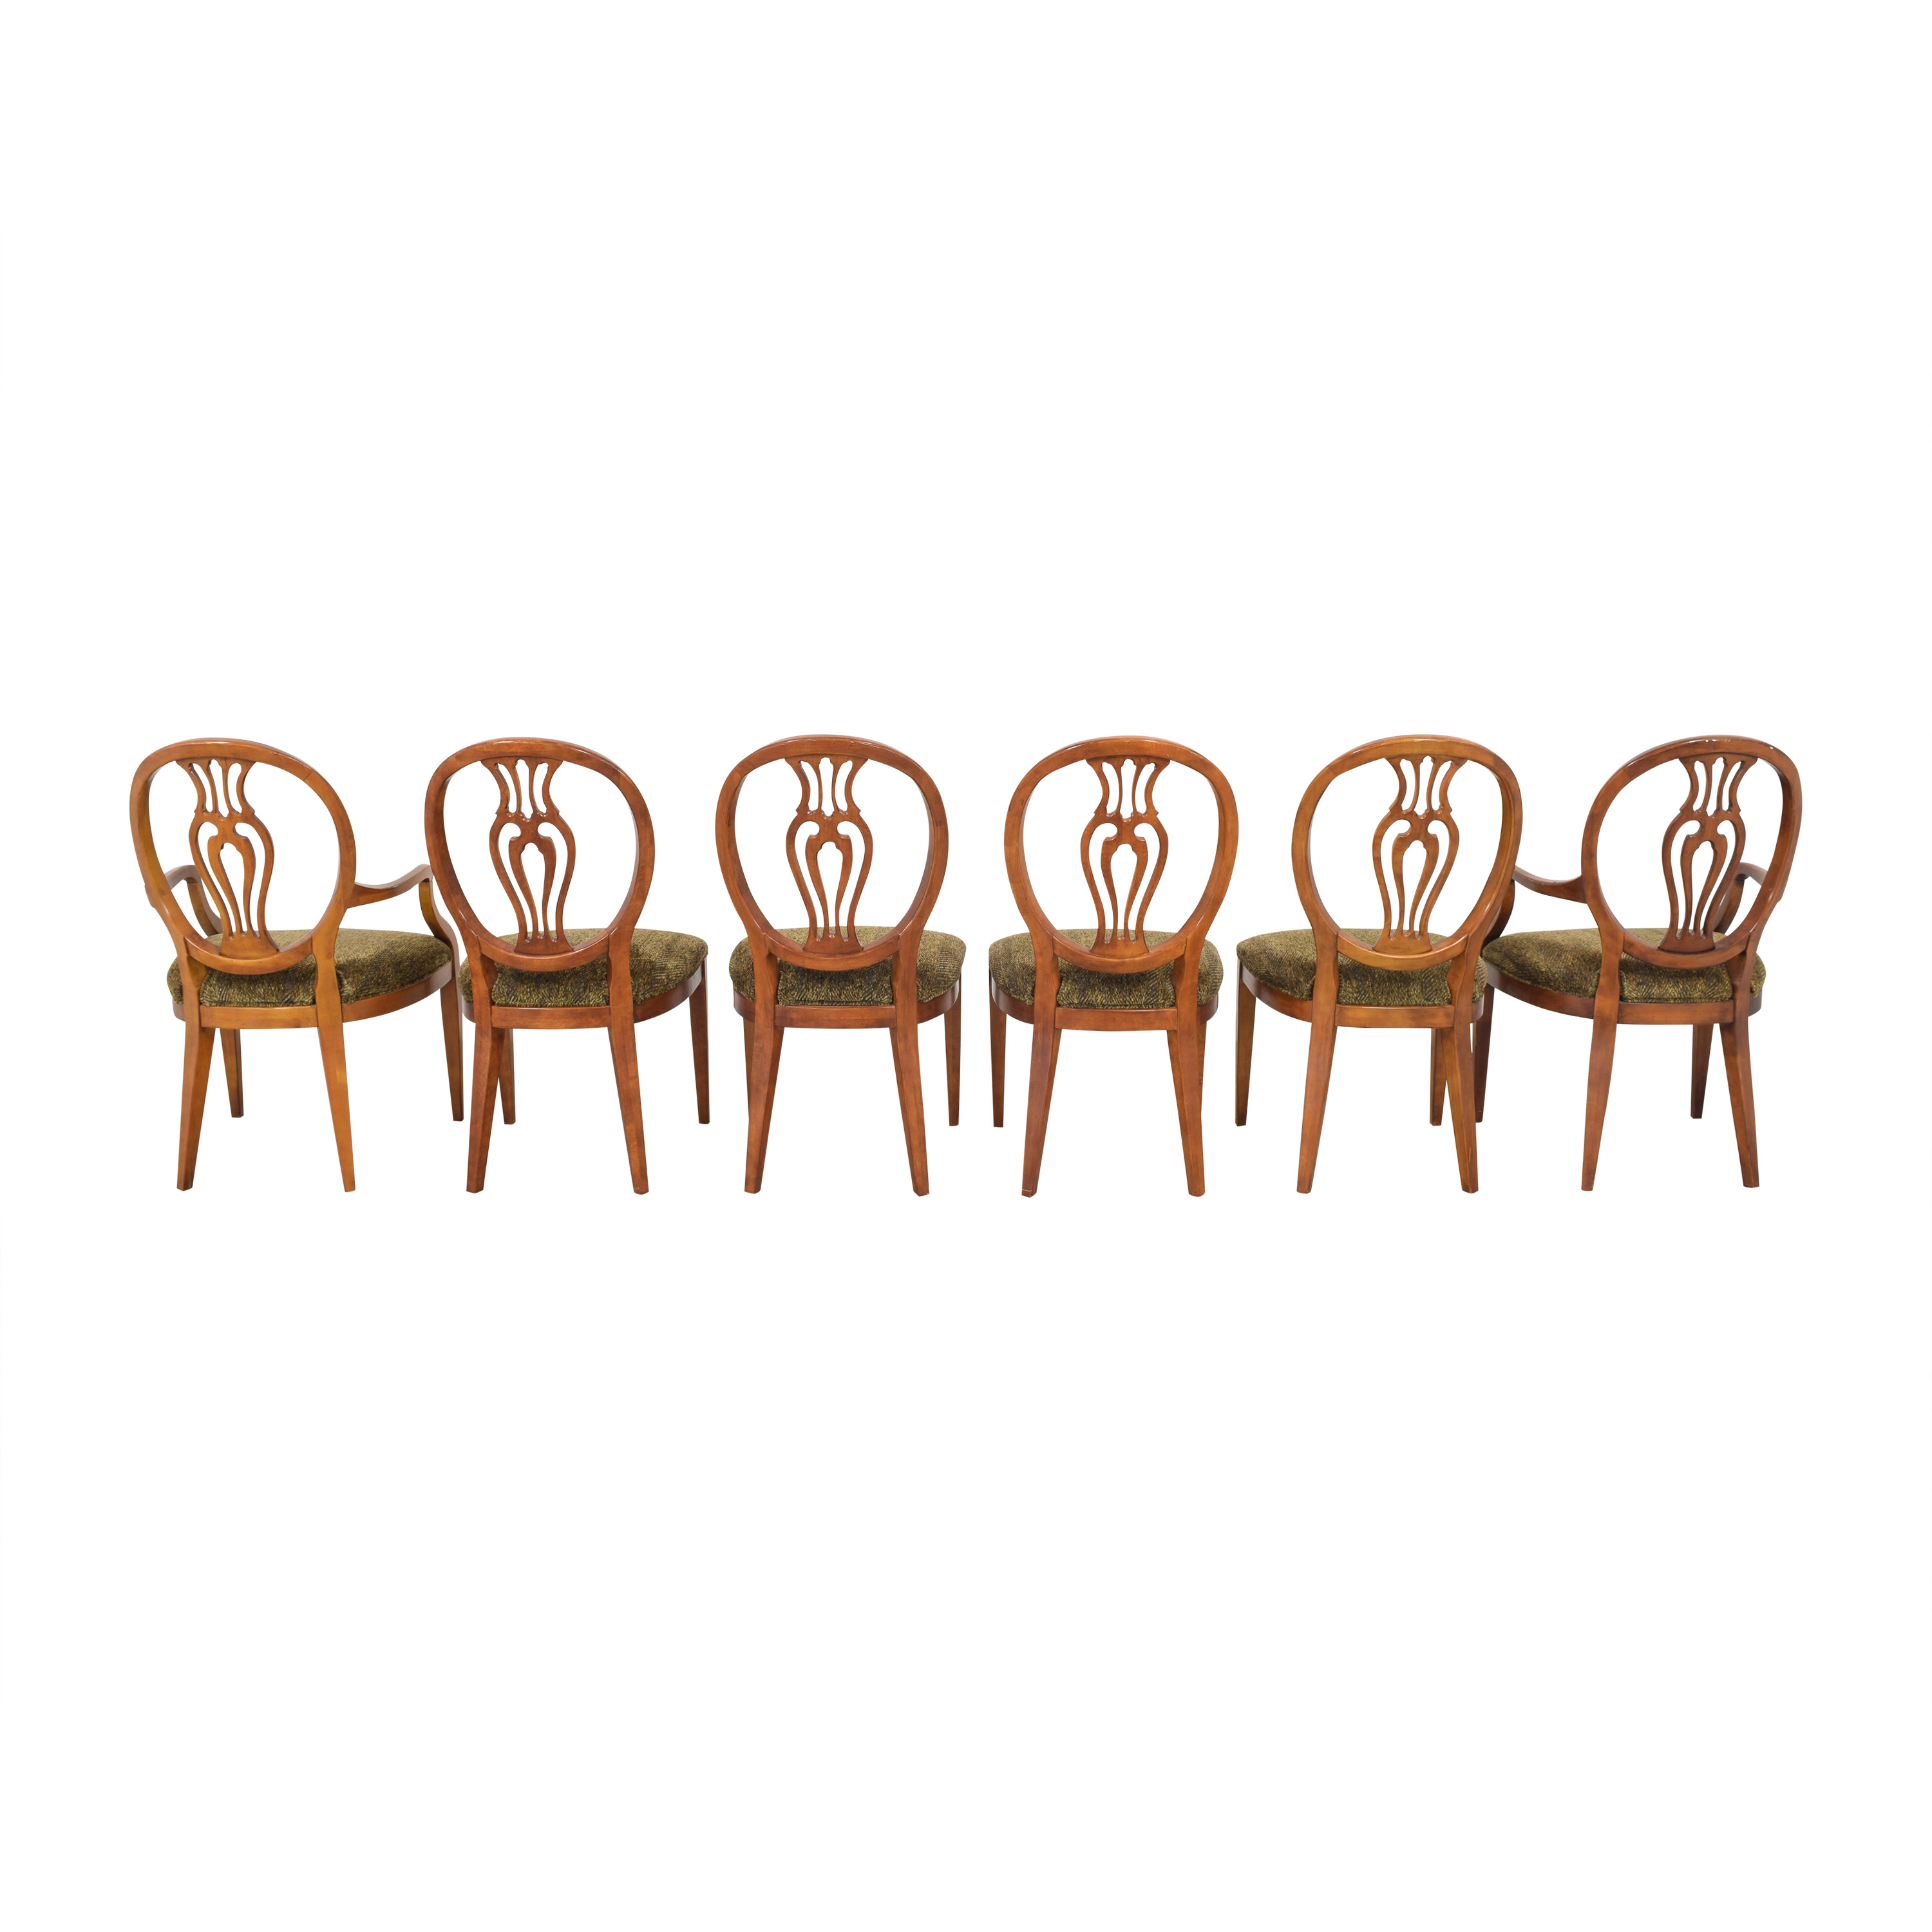 Henredon Furniture Herendon French Pierce Balloon Back Dining Chairs nyc